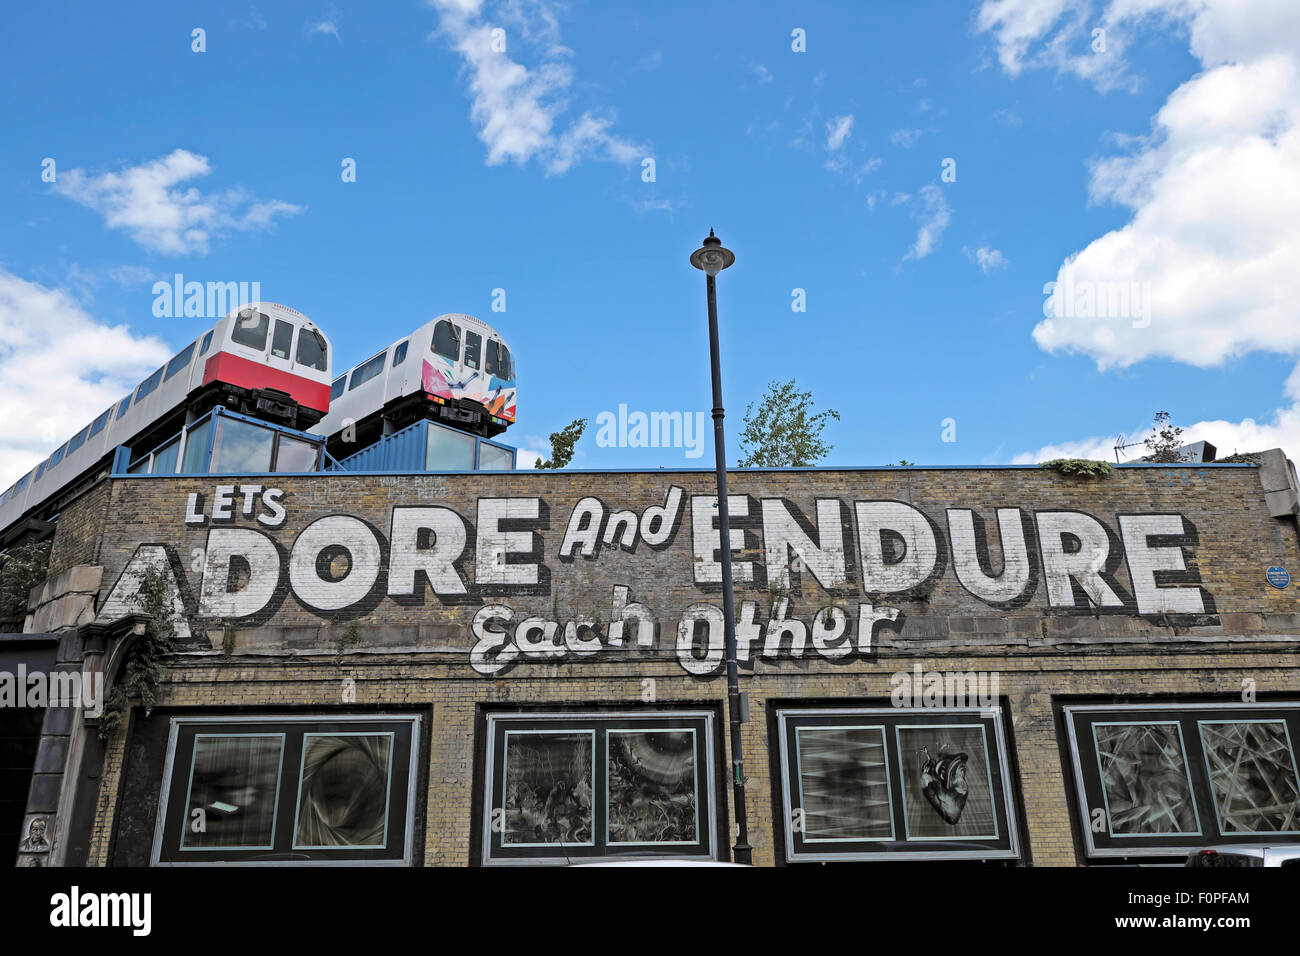 Let's Adore and Endure Each Other graffiti on wall with train carriages on a roof Great Eastern Street in Shoreditch - Stock Image